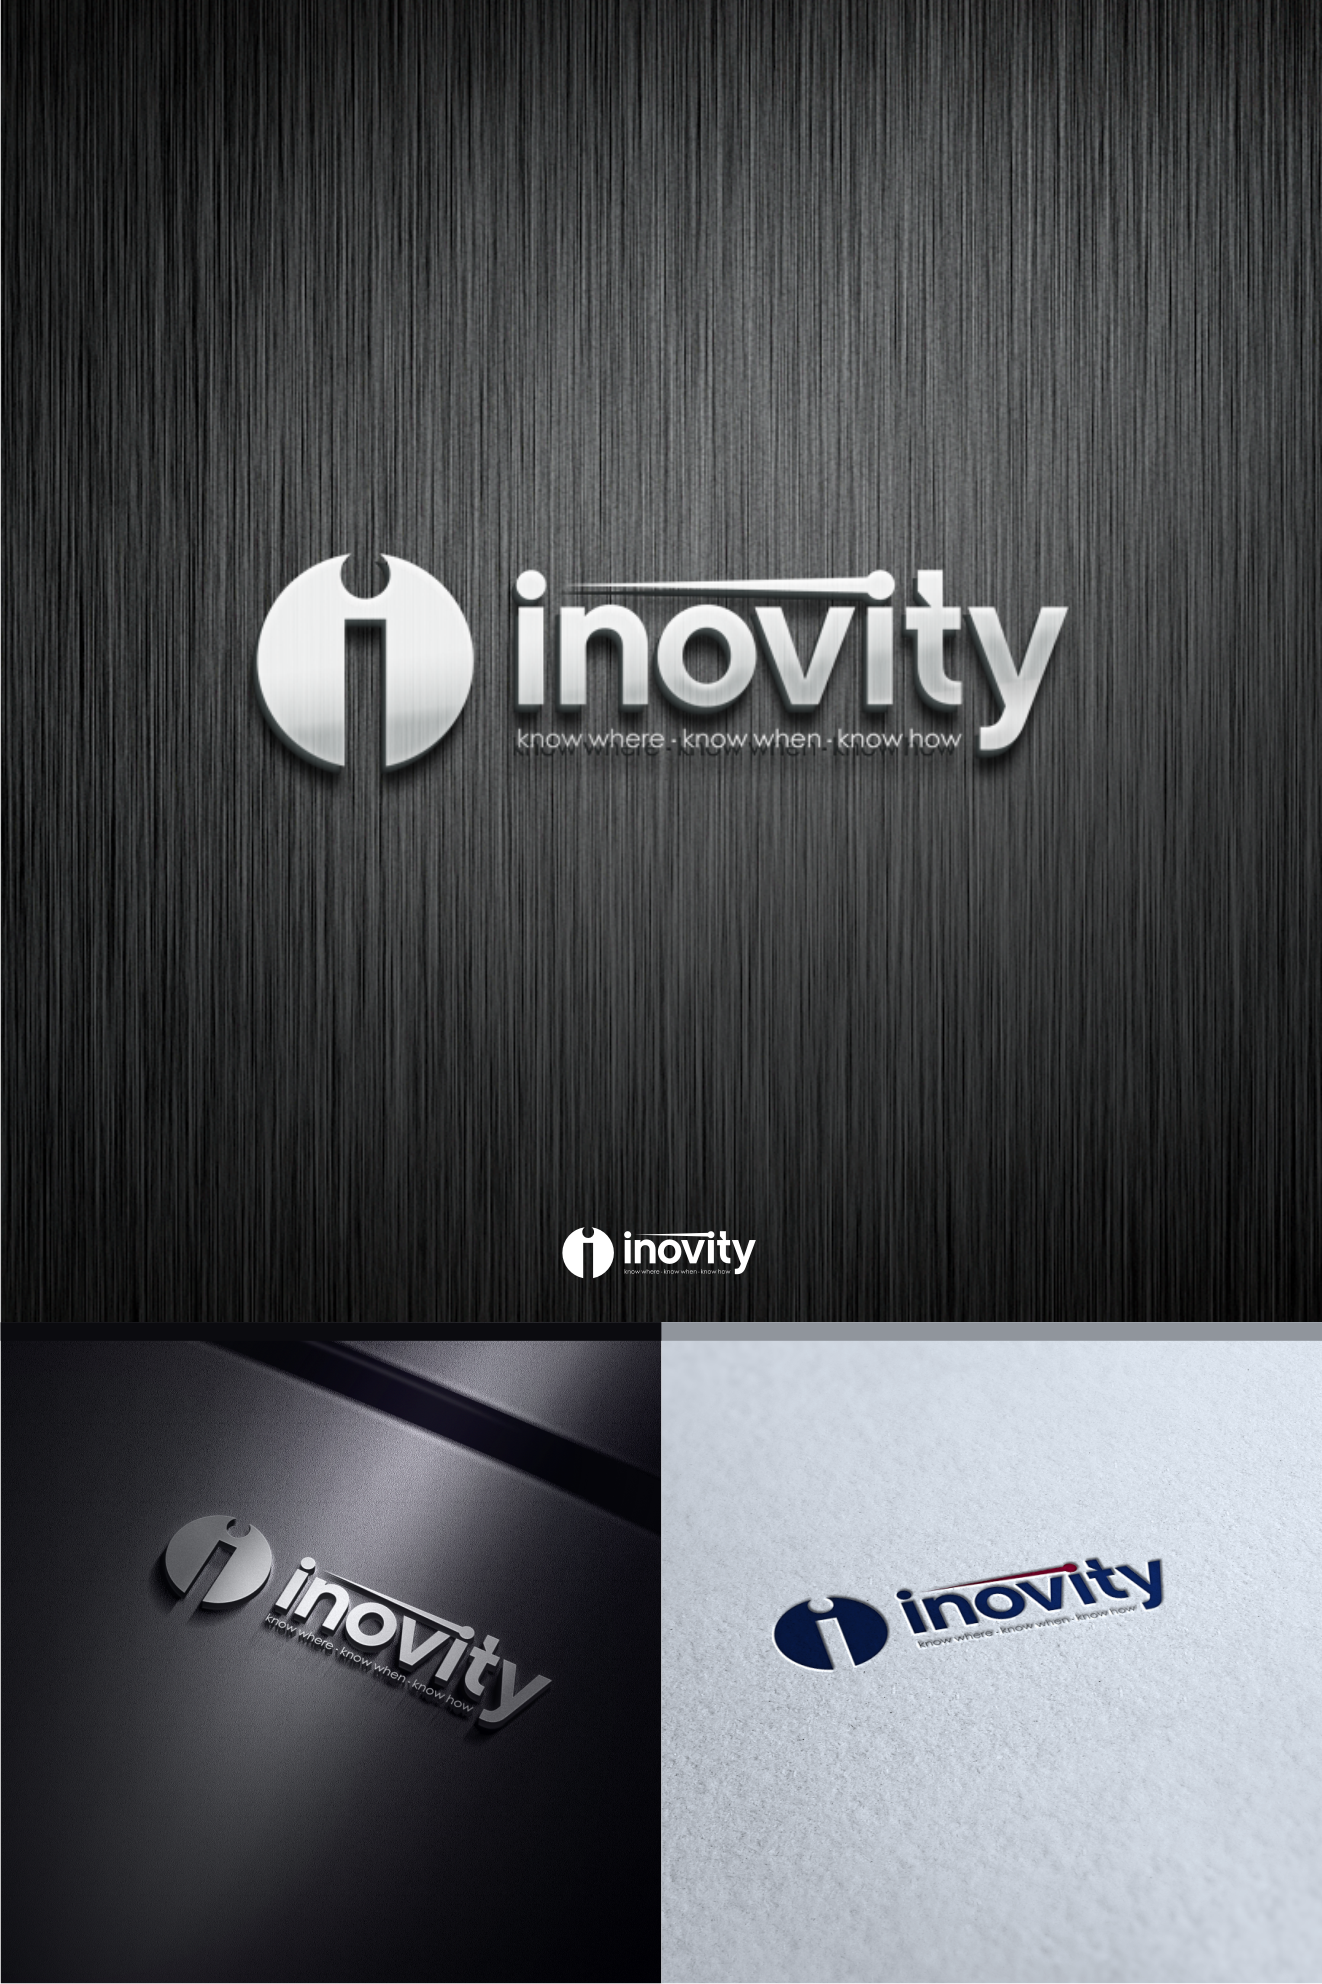 We need innovative new logo and business card for technology company name change.